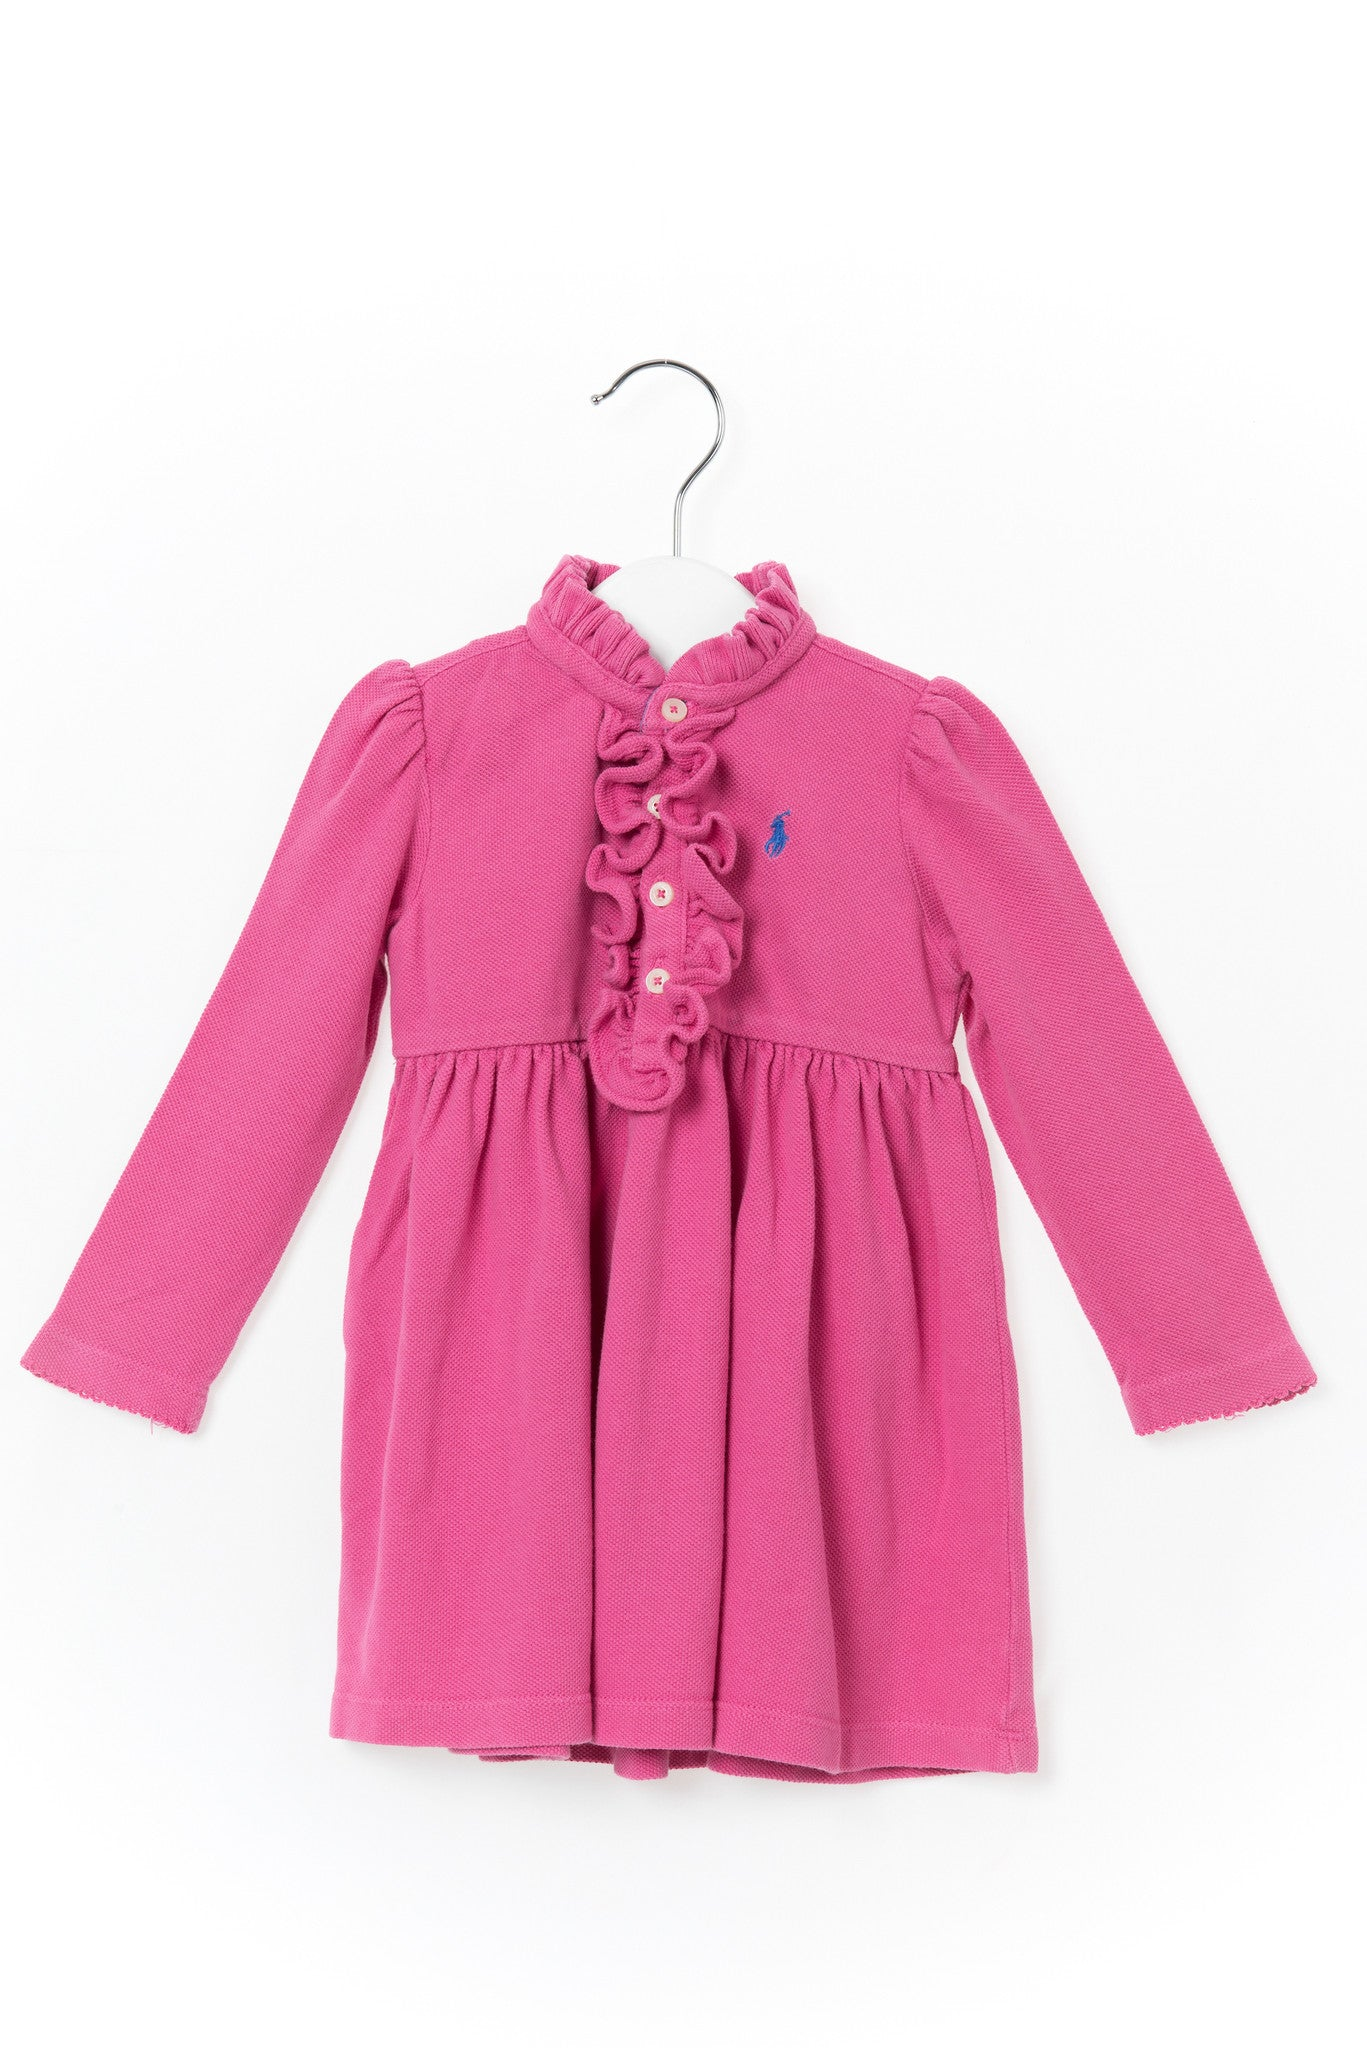 Dress 9M, Ralph Lauren at Retykle - Online Baby & Kids Clothing Up to 90% Off